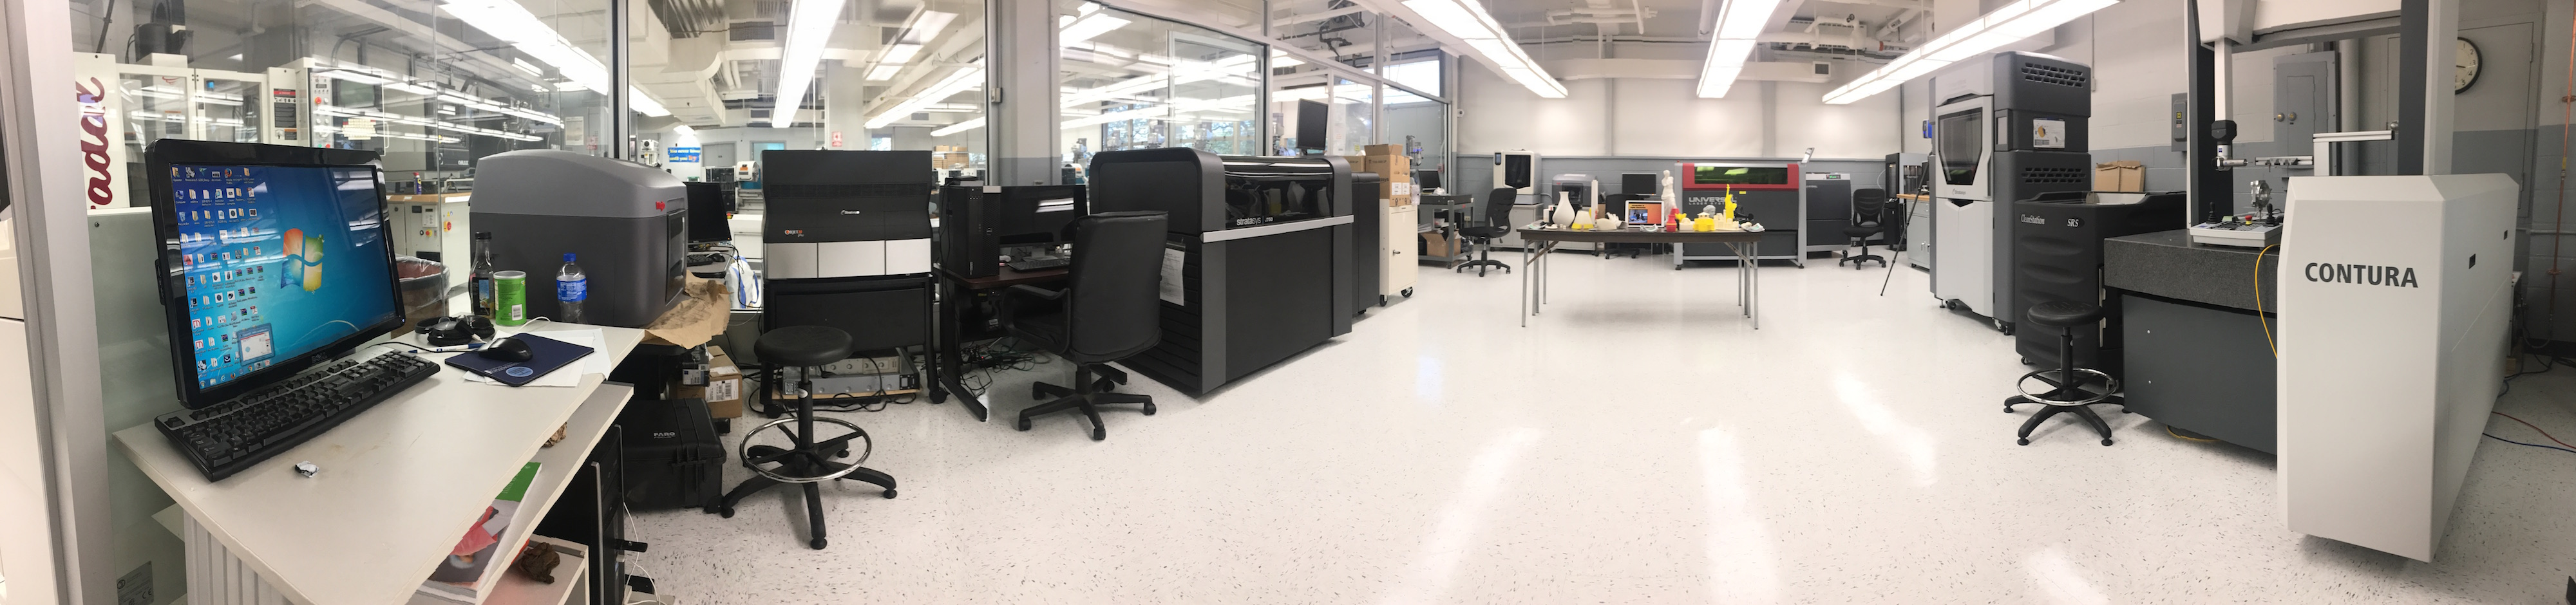 Advanced Manufacturing Lab equipment view